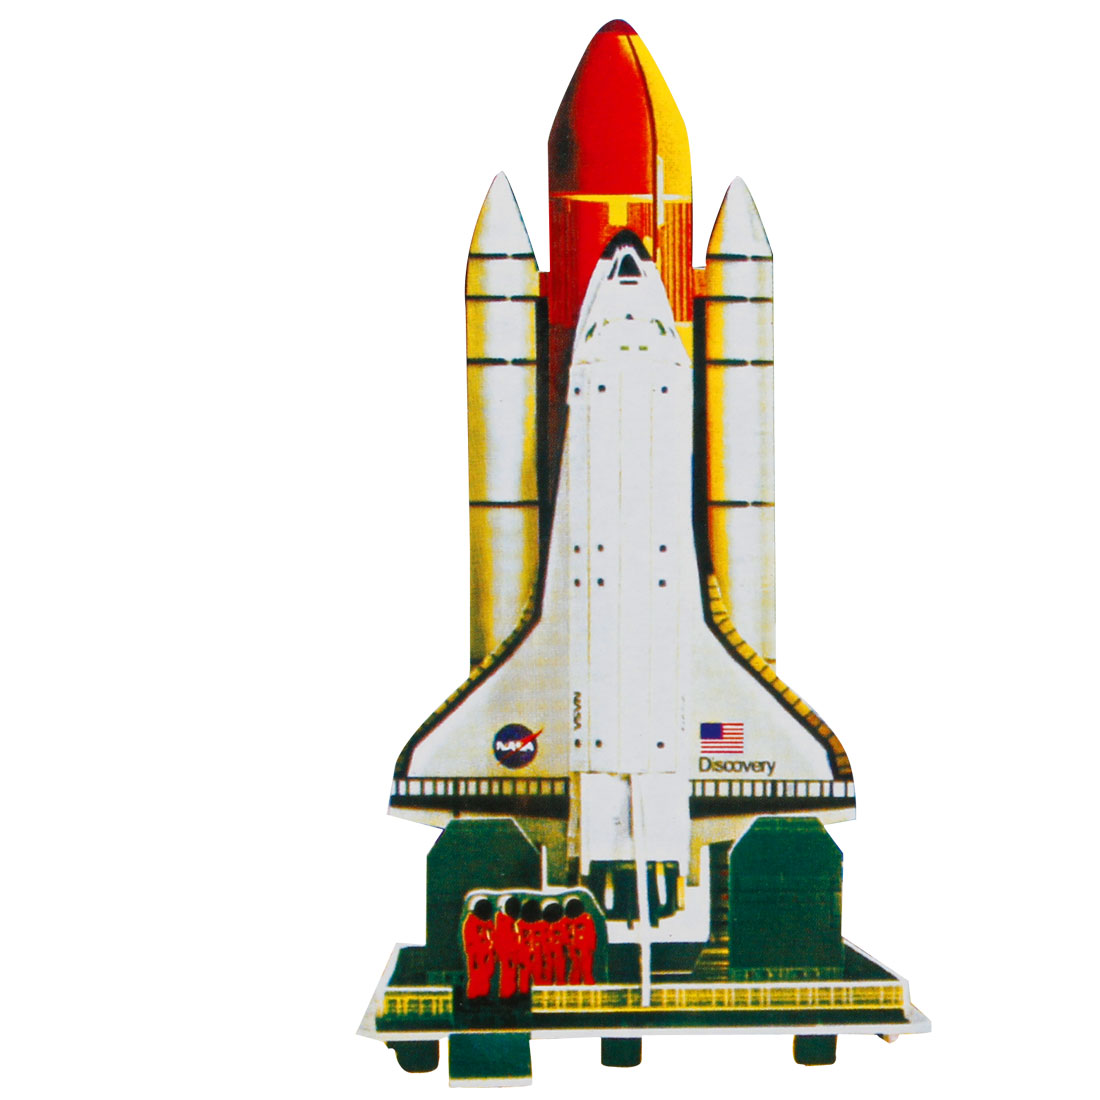 4 Sheets Technological Space Shuttle Discovery 3D Jigsaw Puzzles Toys for Kid